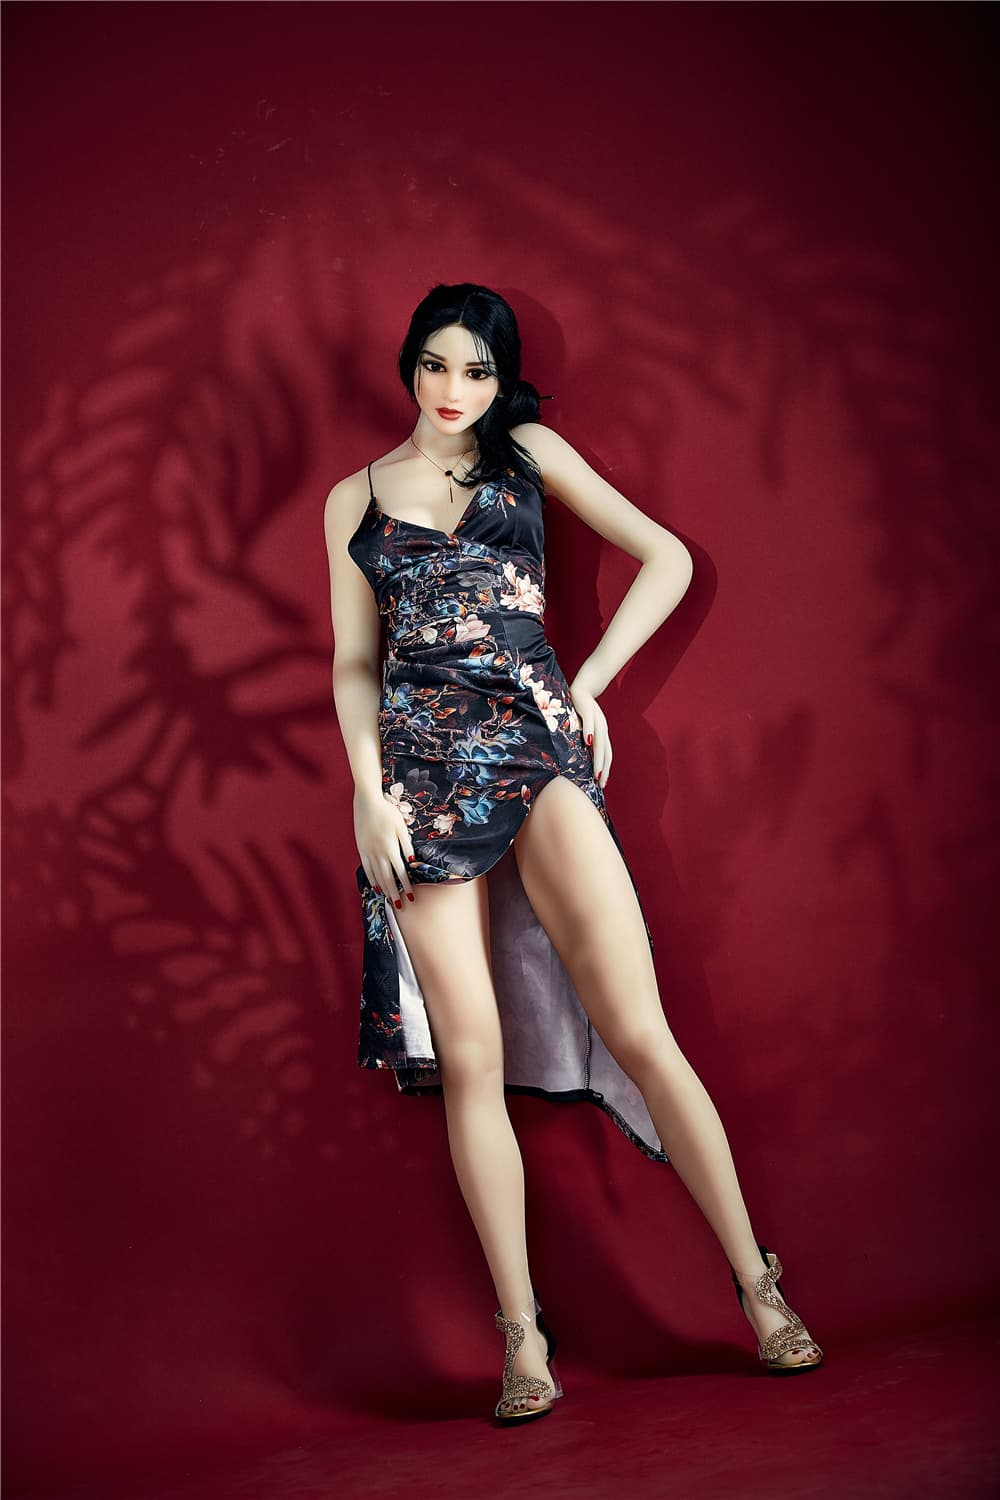 bonita 168cm black hair athletic flat chested tpe sex doll(5)